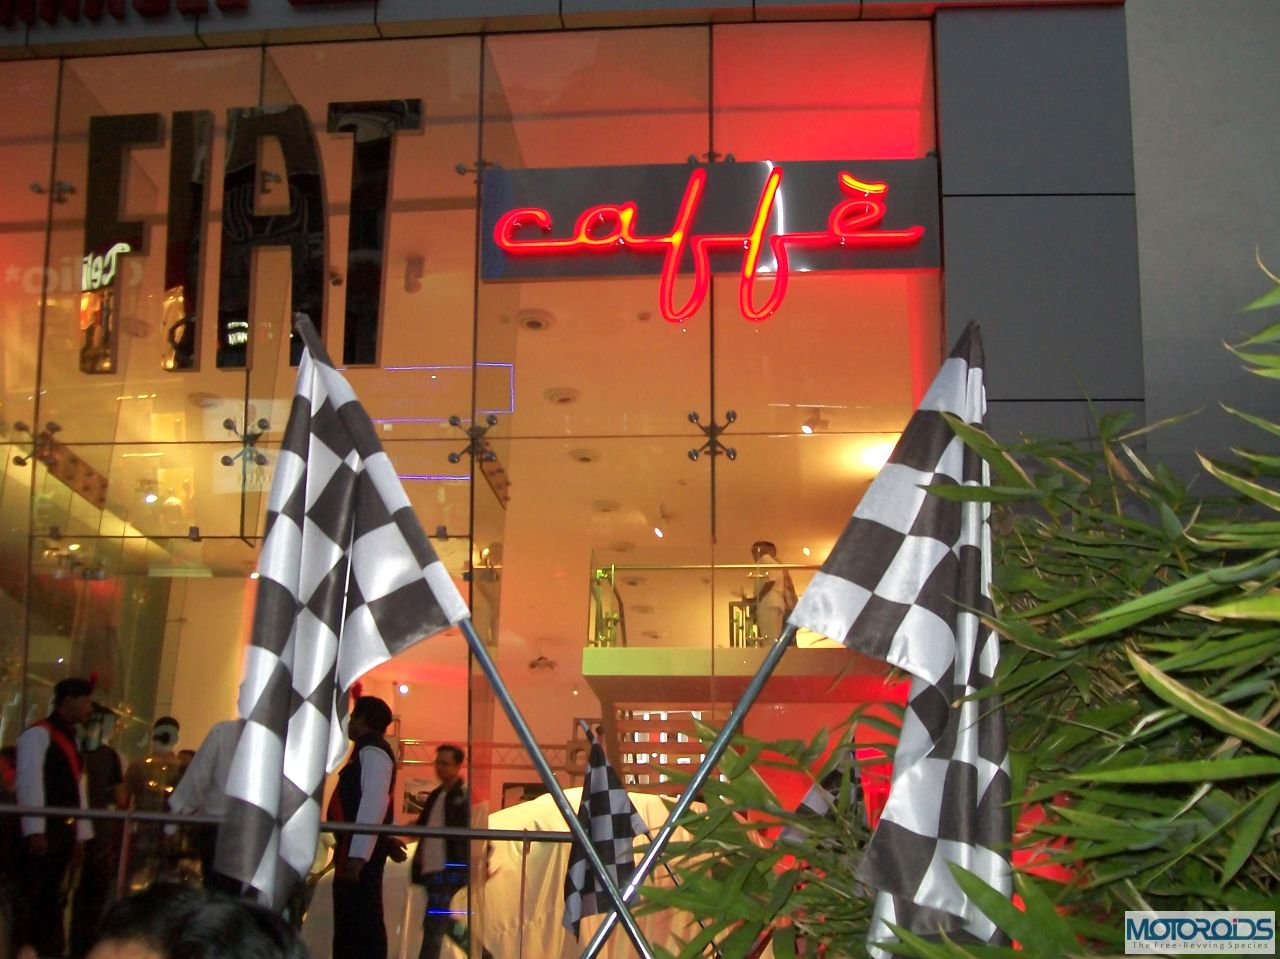 Fiat Caffe launched at Pune. Finally a place to hang out for car buffs